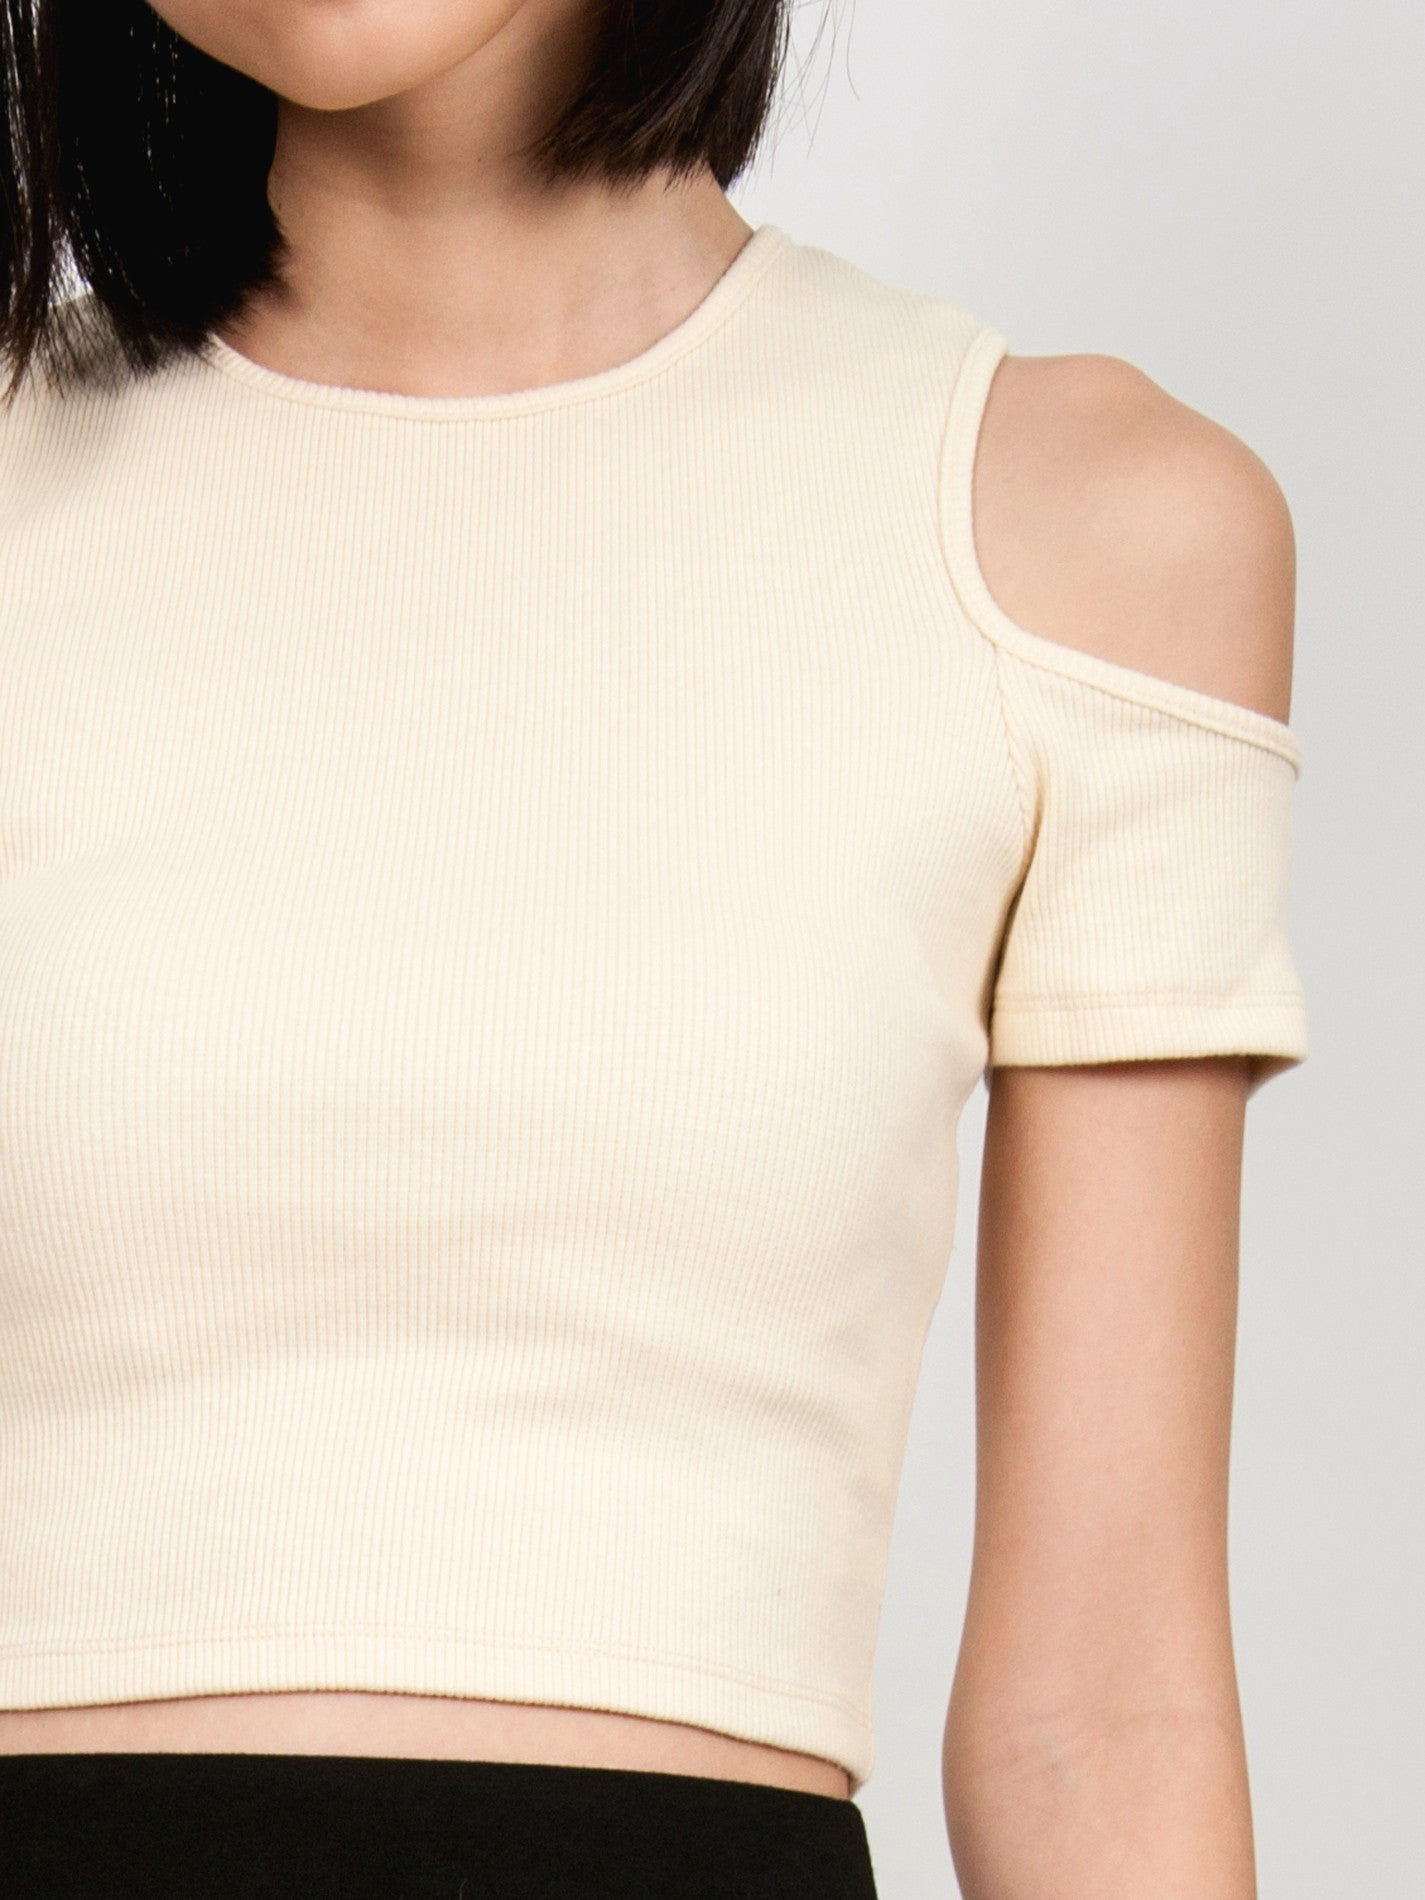 SKYLAR Ribbed Cold Shoulder Top (Cream)